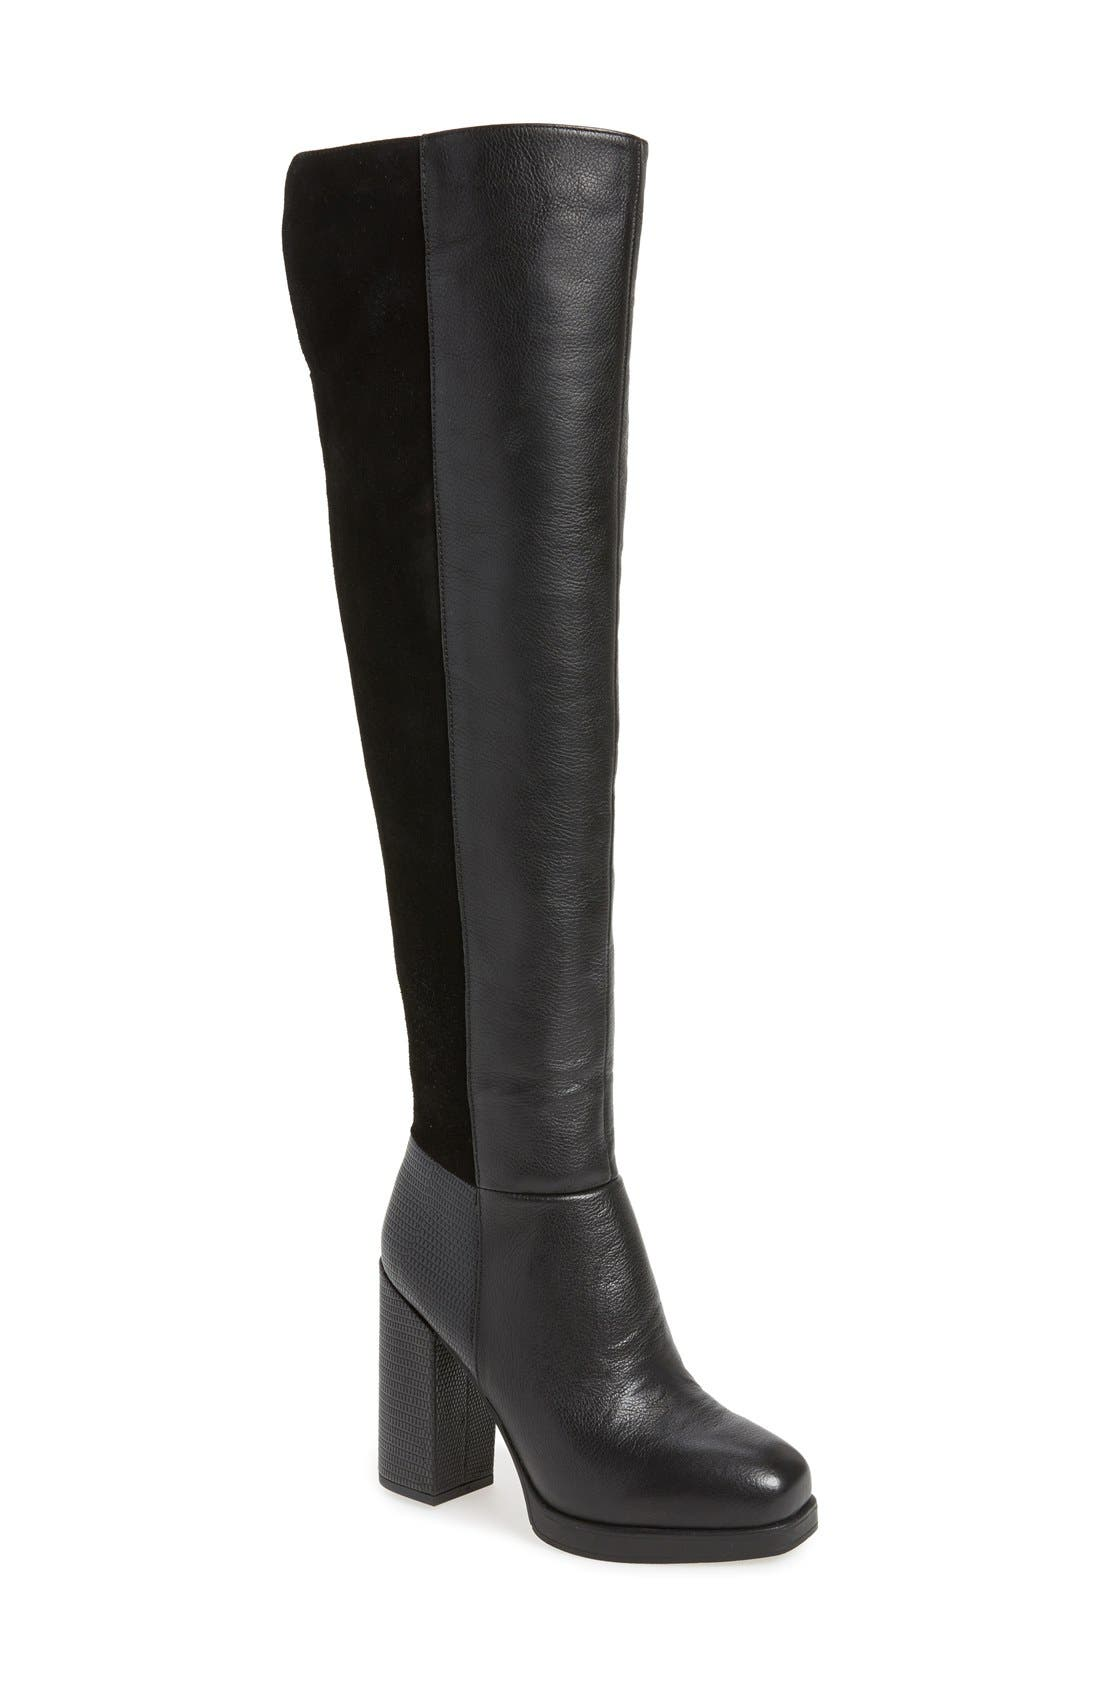 Main Image - Circus by Sam Edelman'Howell' Over the Knee Boot (Women)